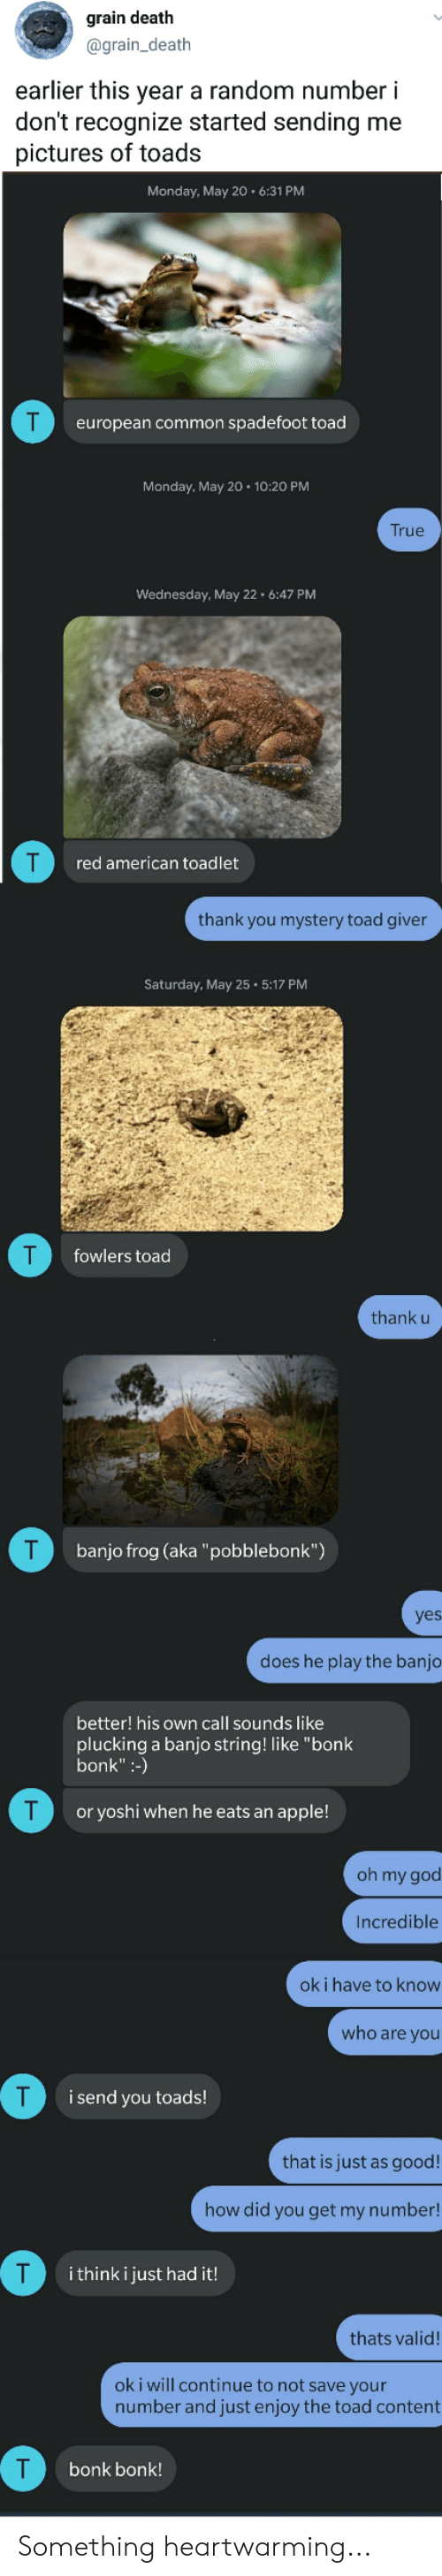 """Apple, God, and Oh My God: grain death  @grain_death  earlier this year a random number i  don't recognize started sending me  pictures of toads  Monday, May 20 6:31 PM  european common spadefoot toad  Monday, May 20 10:20 PM  True  Wednesday, May 22 6:47 PM  red american toadlet  thank you mystery toad giver  Saturday, May 25 5:17 PM  fowlers toad  thank u  T  banjo frog (aka """"pobblebonk"""")  yes  does he play the banjo  better! his own call sounds like  plucking a banjo string! like """"bonk  bonk"""":-)  T  or yoshi when he eats an apple!  oh my god  Incredible  oki have to know  who are you  T  i send you toads!  that is just as good!  how did you get my number!  T  i think i just had it!  thats valid!  oki will continue to not save your  number and just enjoy the toad content  T  bonk bonk! Something heartwarming..."""